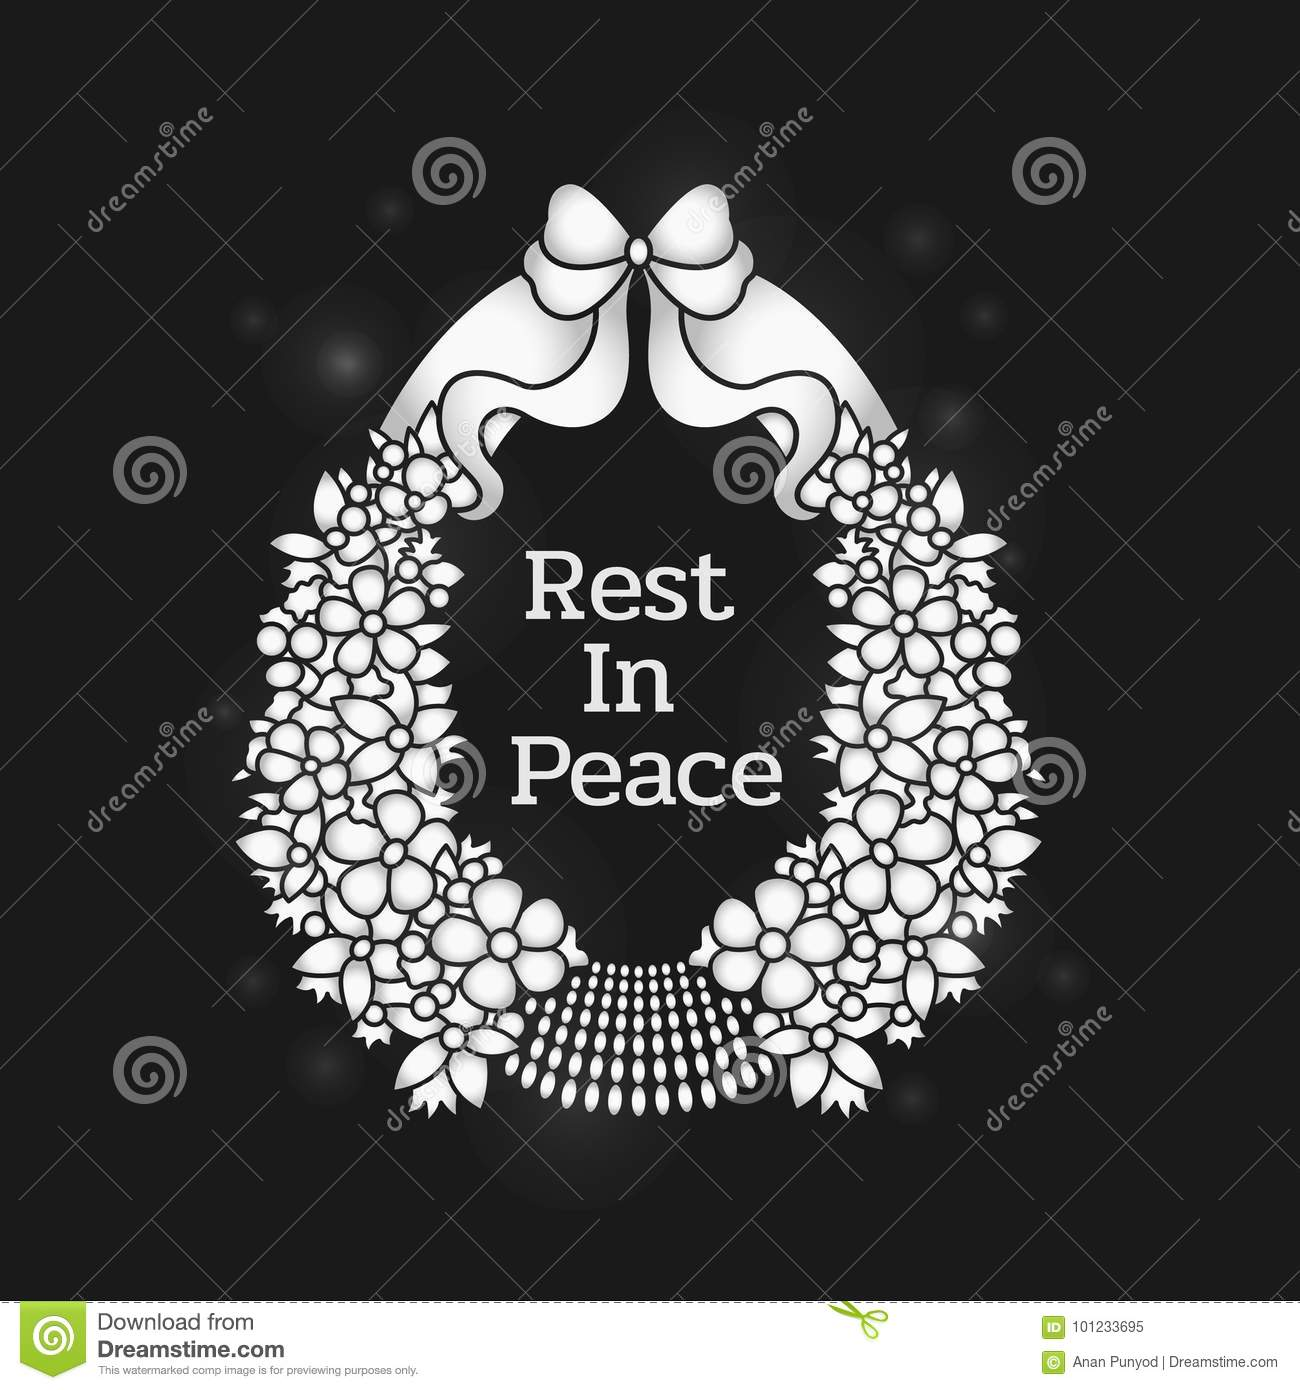 Funeral banner with rest in peace text in flowers wreath stock download funeral banner with rest in peace text in flowers wreath stock vector illustration of izmirmasajfo